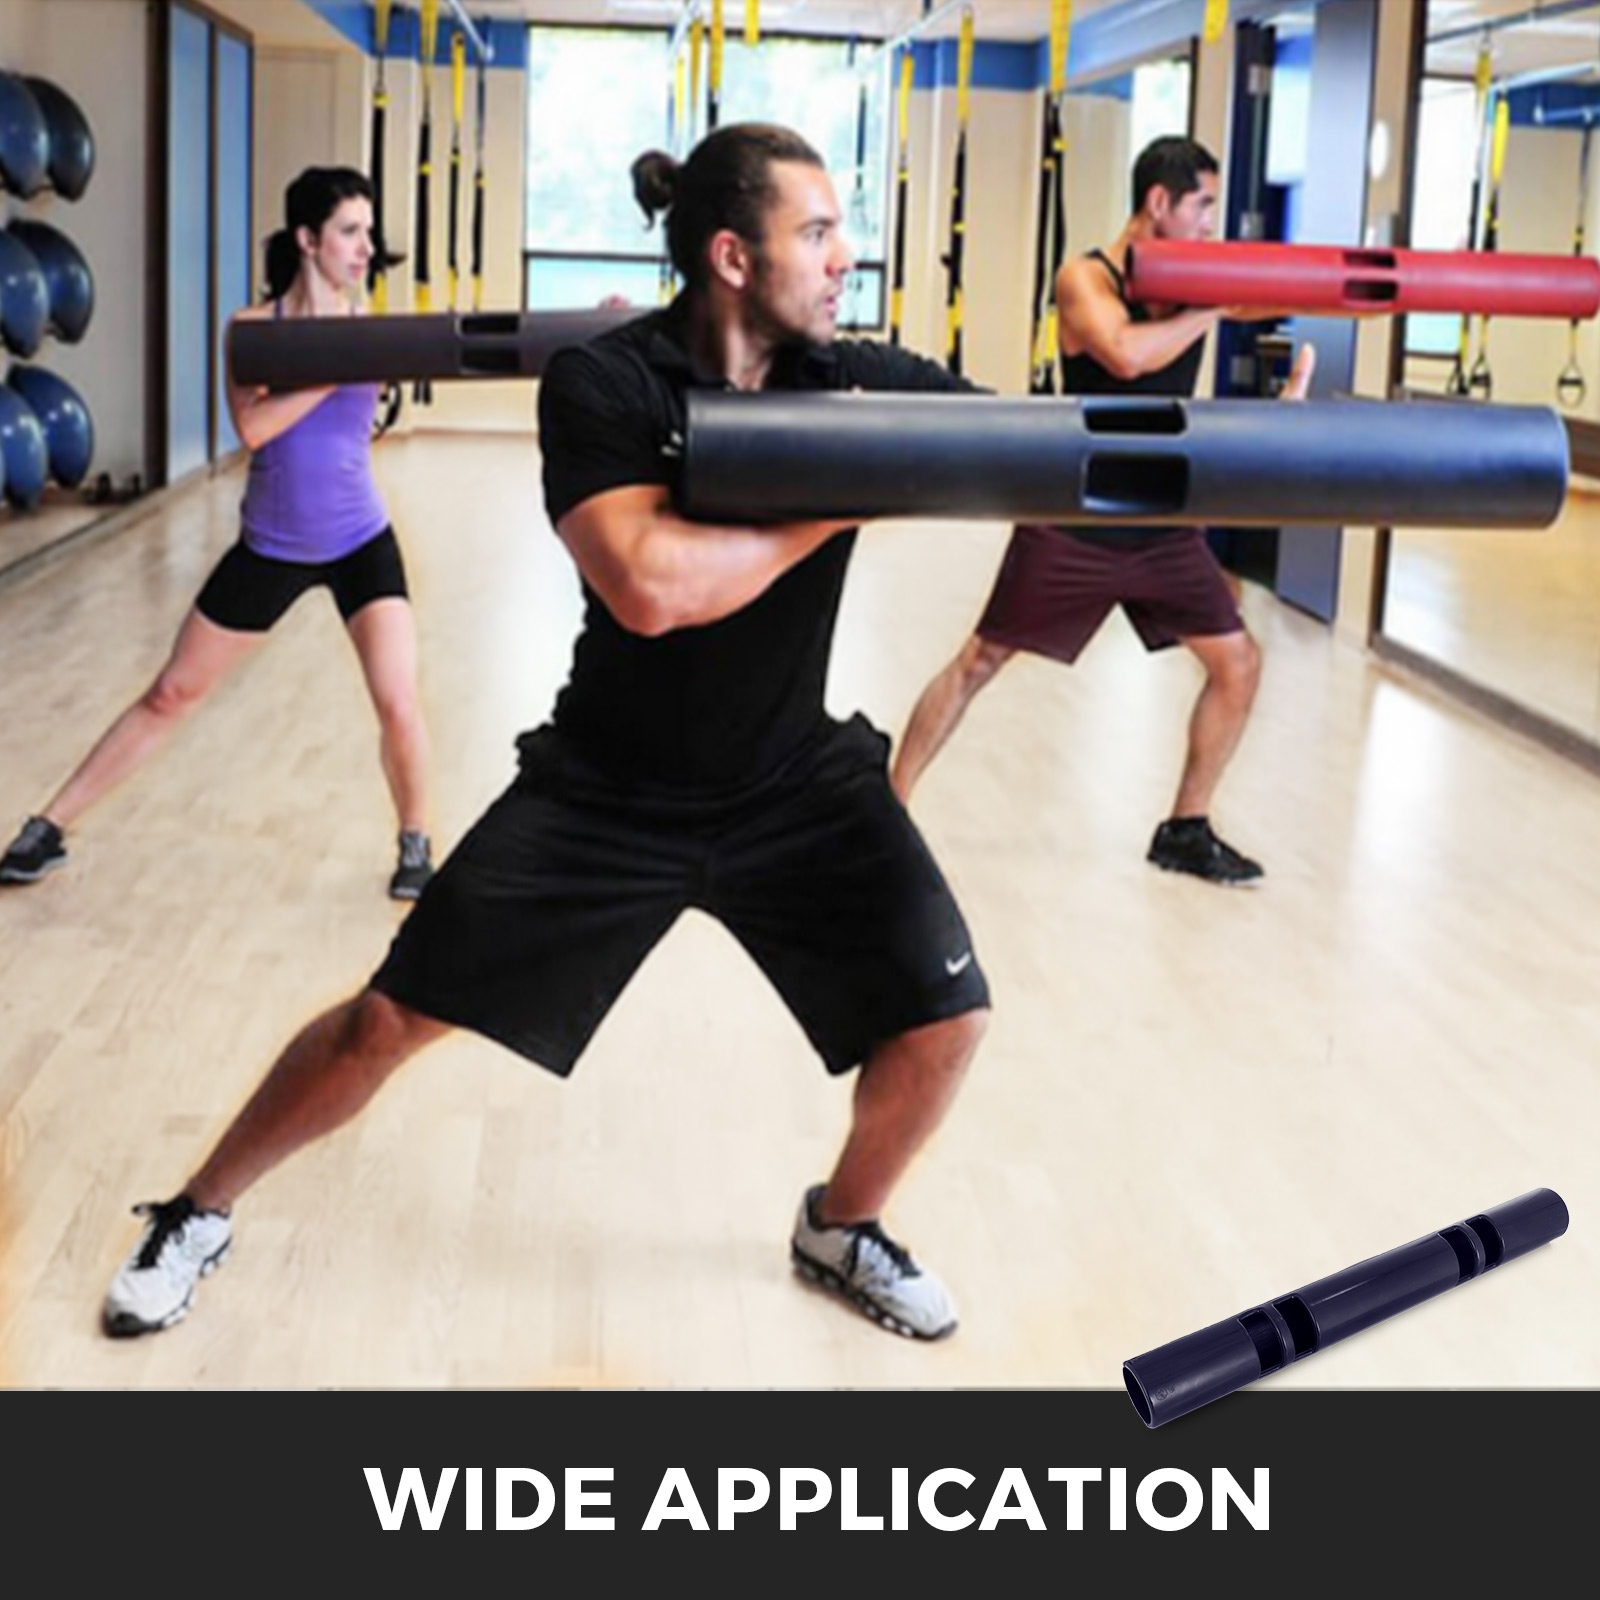 Vipr-Fitpro-Fitness-Tube-Loaded-Movement-Training-weightlifting-4-6-8-10-12-Kg thumbnail 127